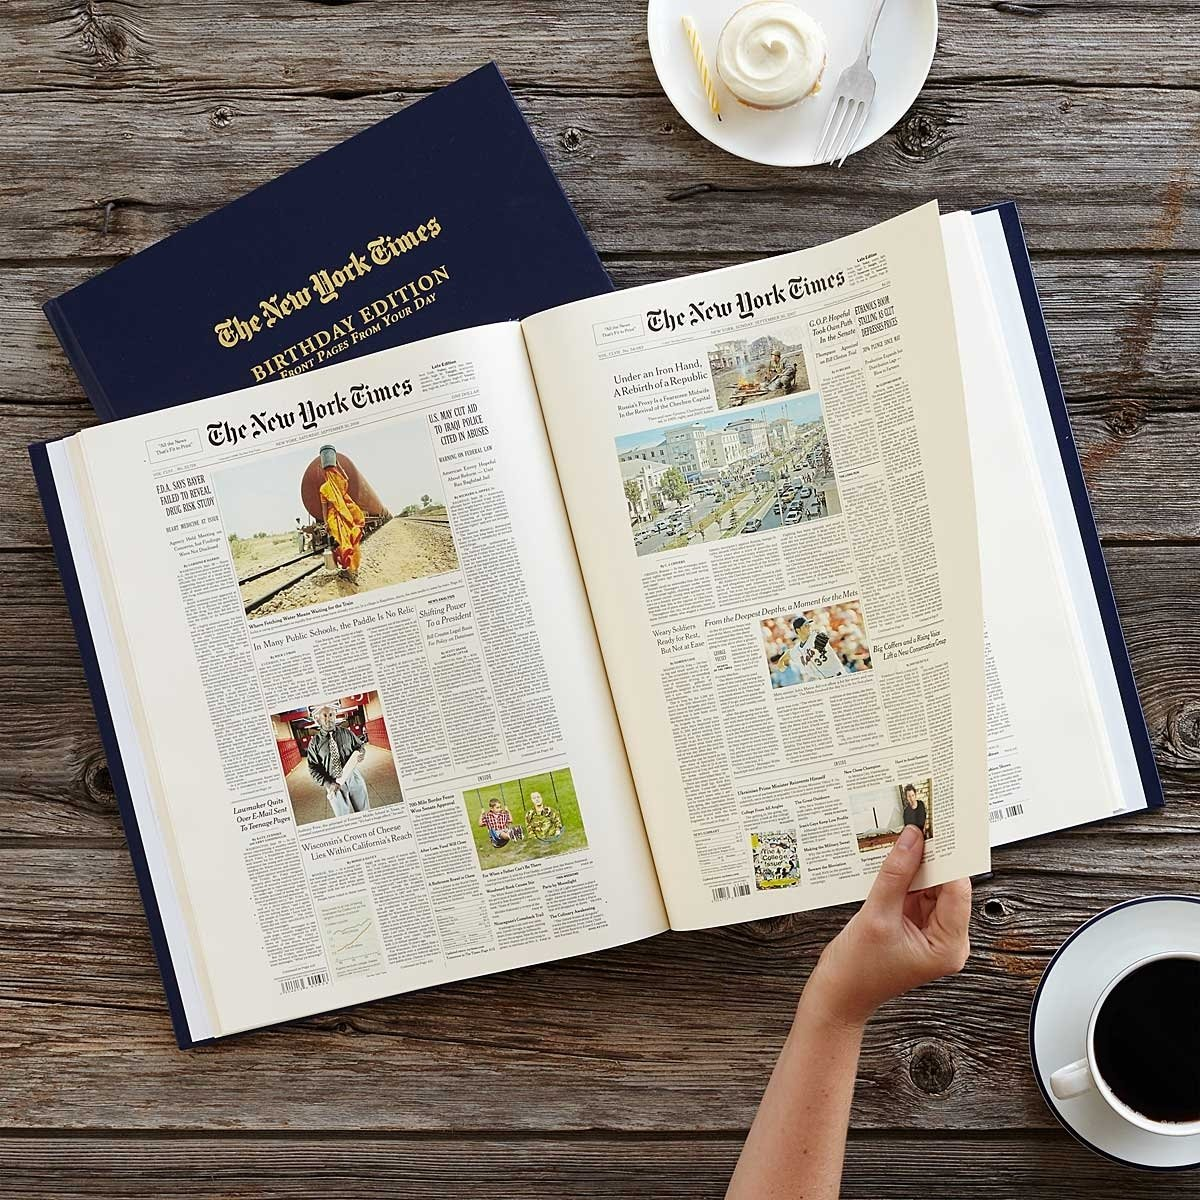 10 Wonderful Personalized Gift Ideas For Him new york times custom birthday book historical newspapers 1 2020